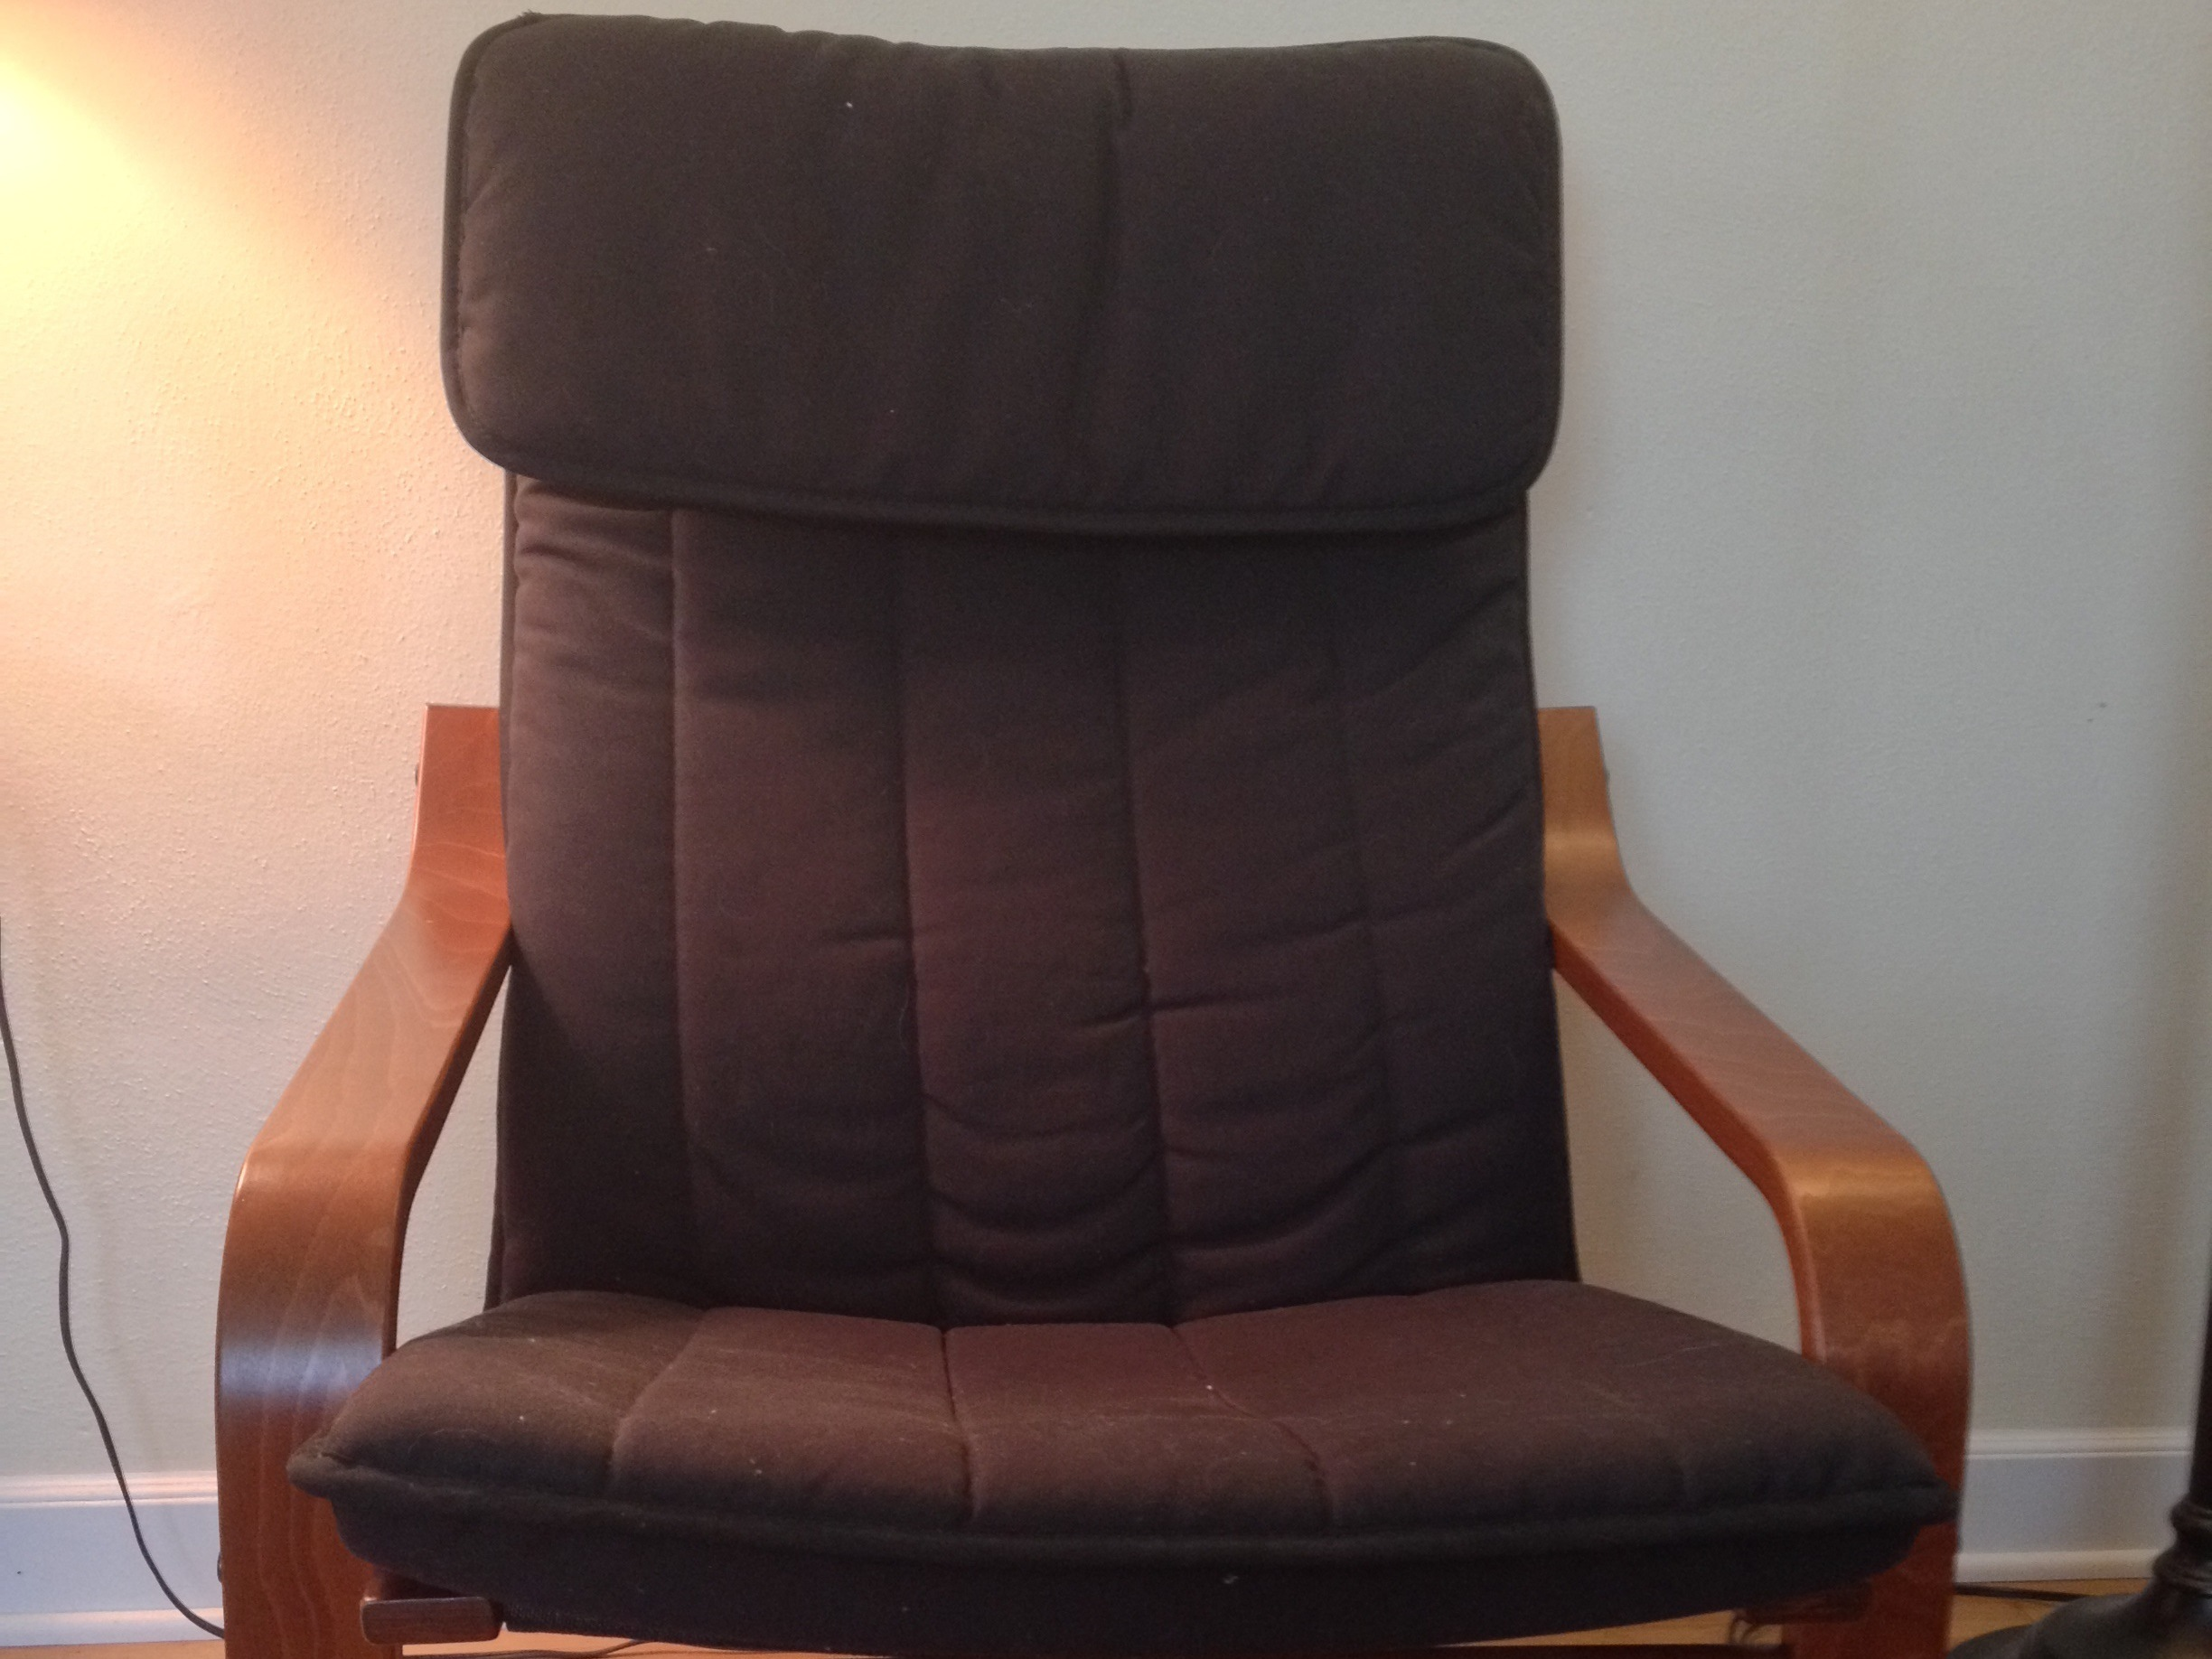 How To Fix An Unstable Ikea Poang Chair Ifixit